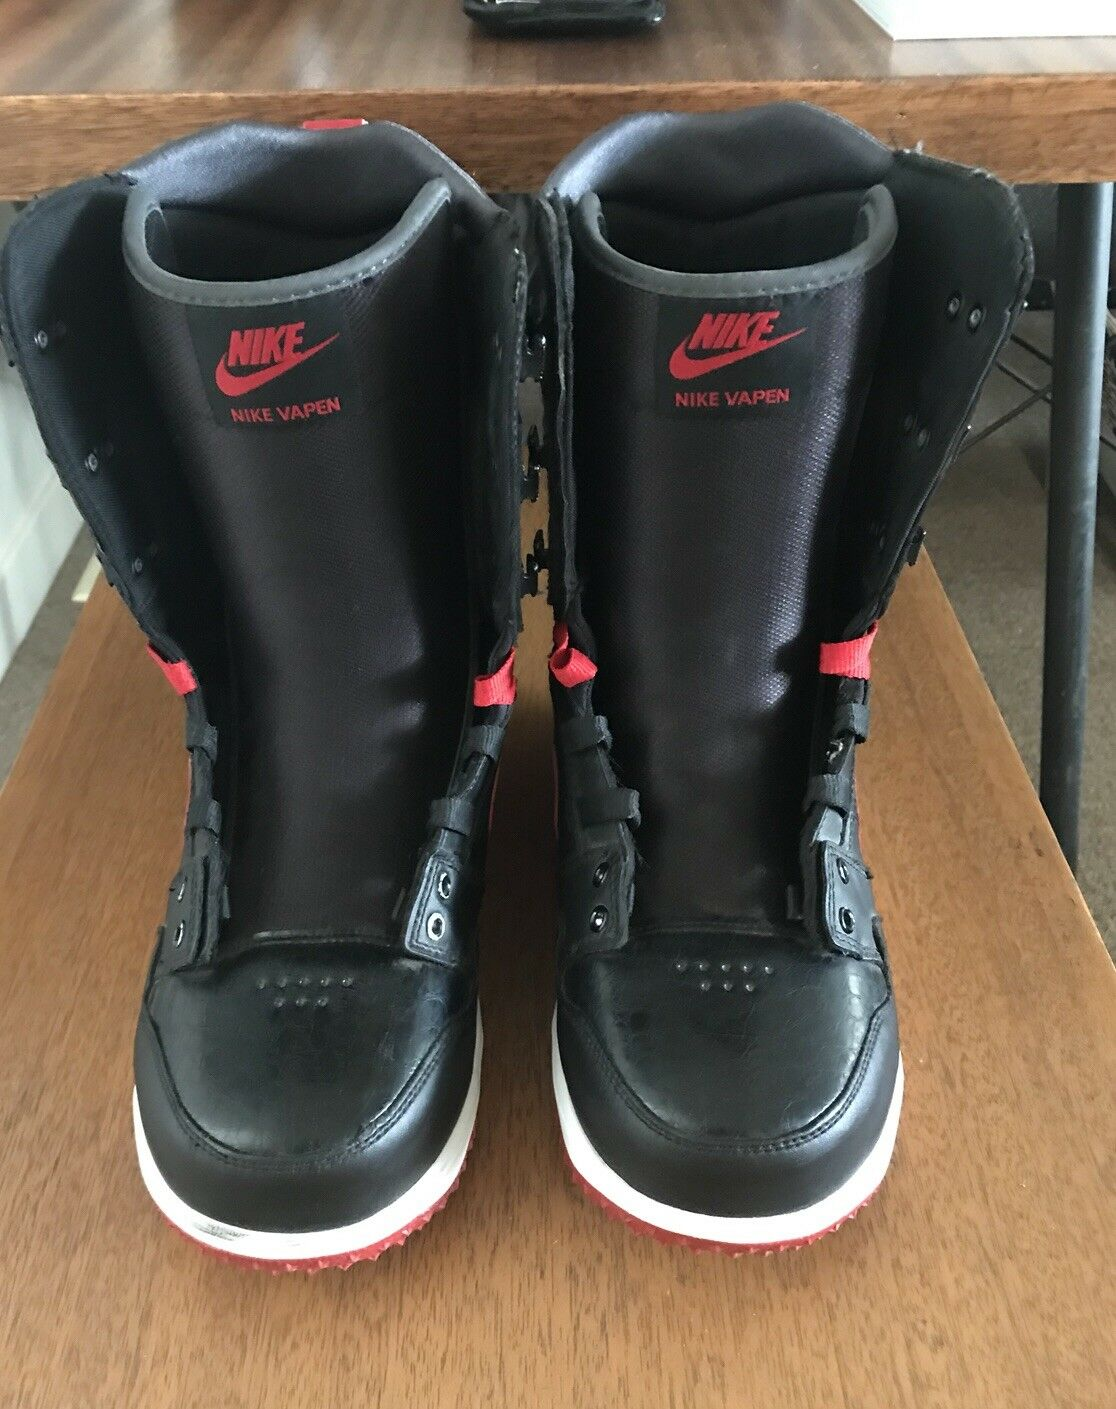 Pre-owned Mens Nike VapenSnowboard Boots Sz 8 Blk Red 447125-001